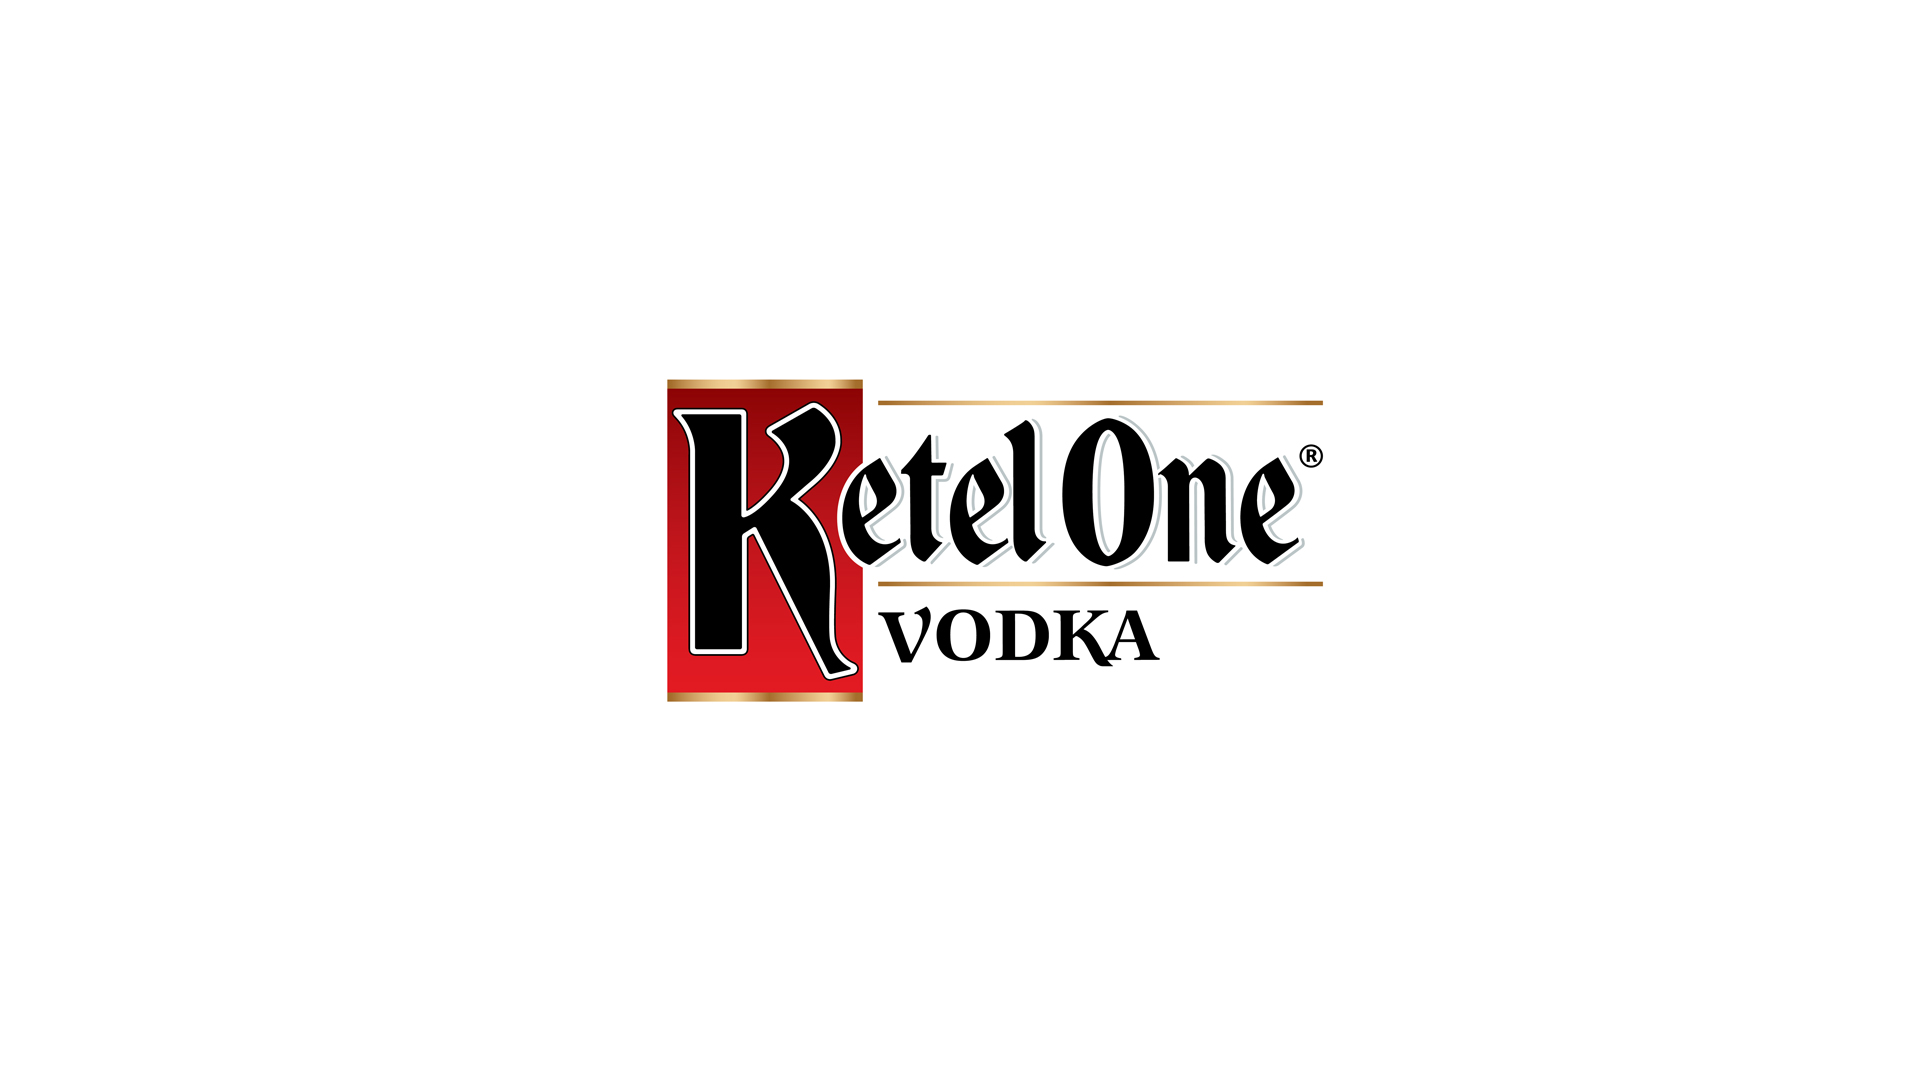 Oz Mfg. Company Ketel One Vodka Logo